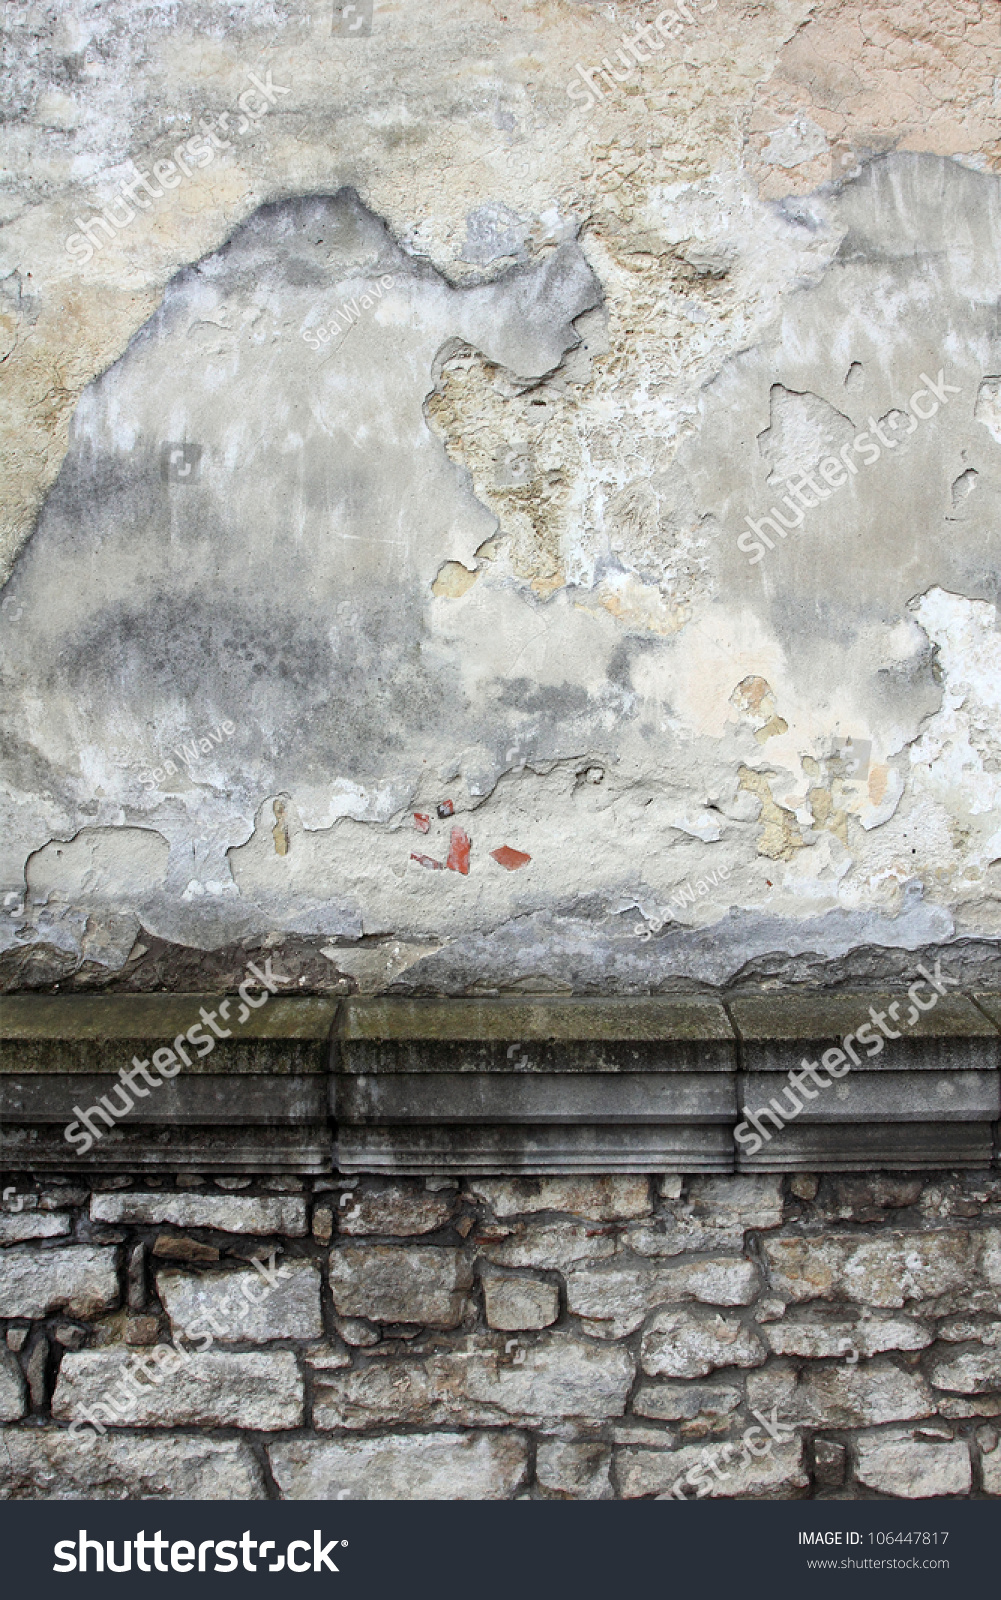 Vintage Stone Walls : Vintage stone wall stock photo shutterstock